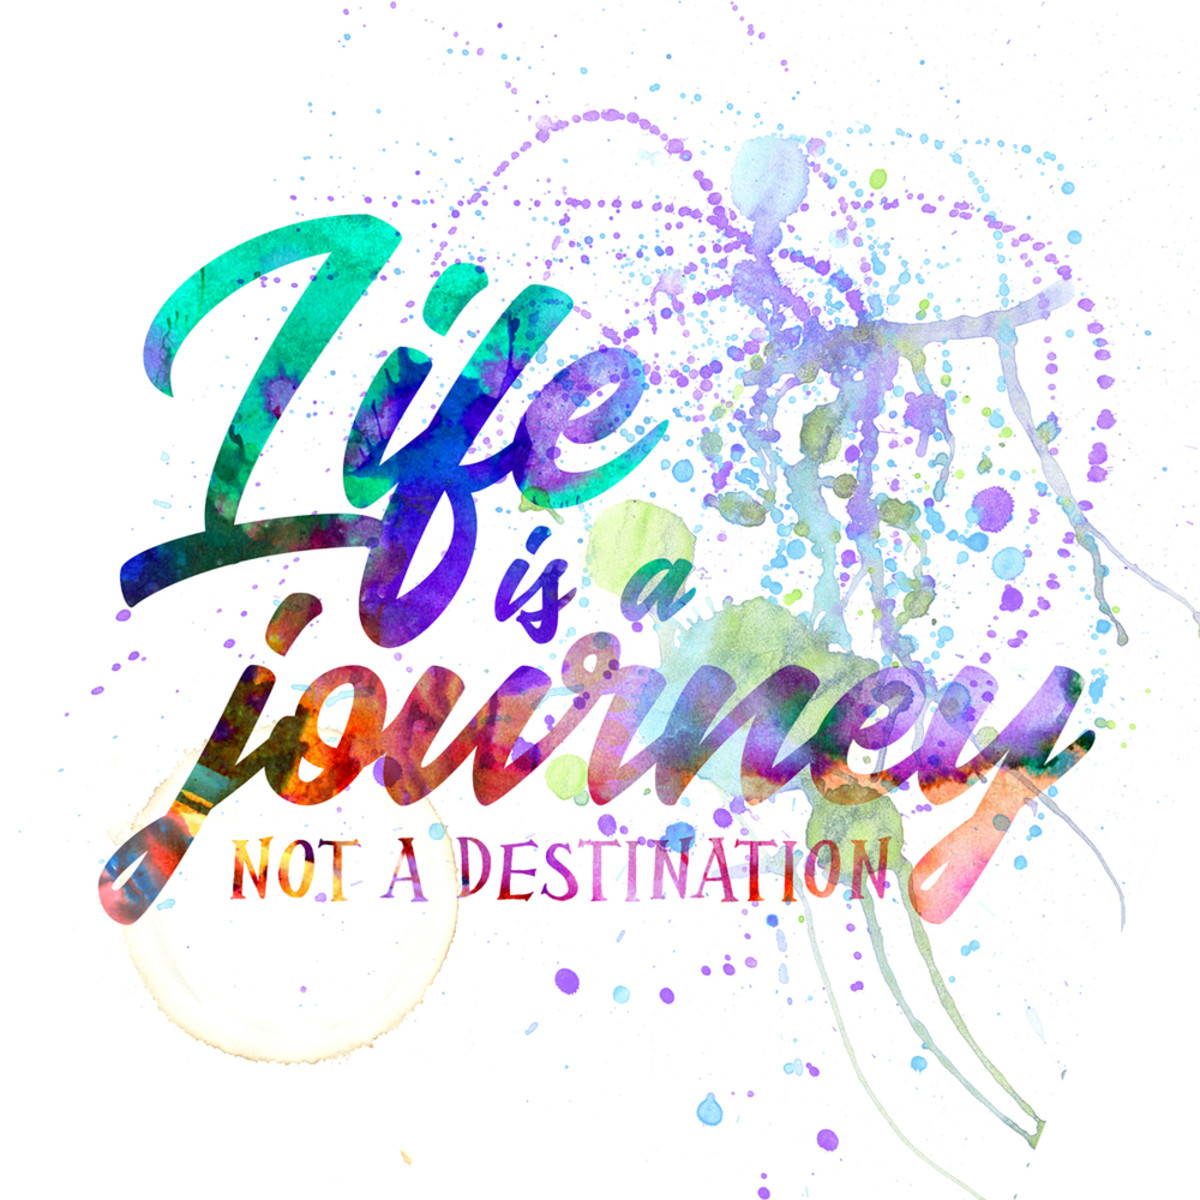 Life in a journeywh duud1r